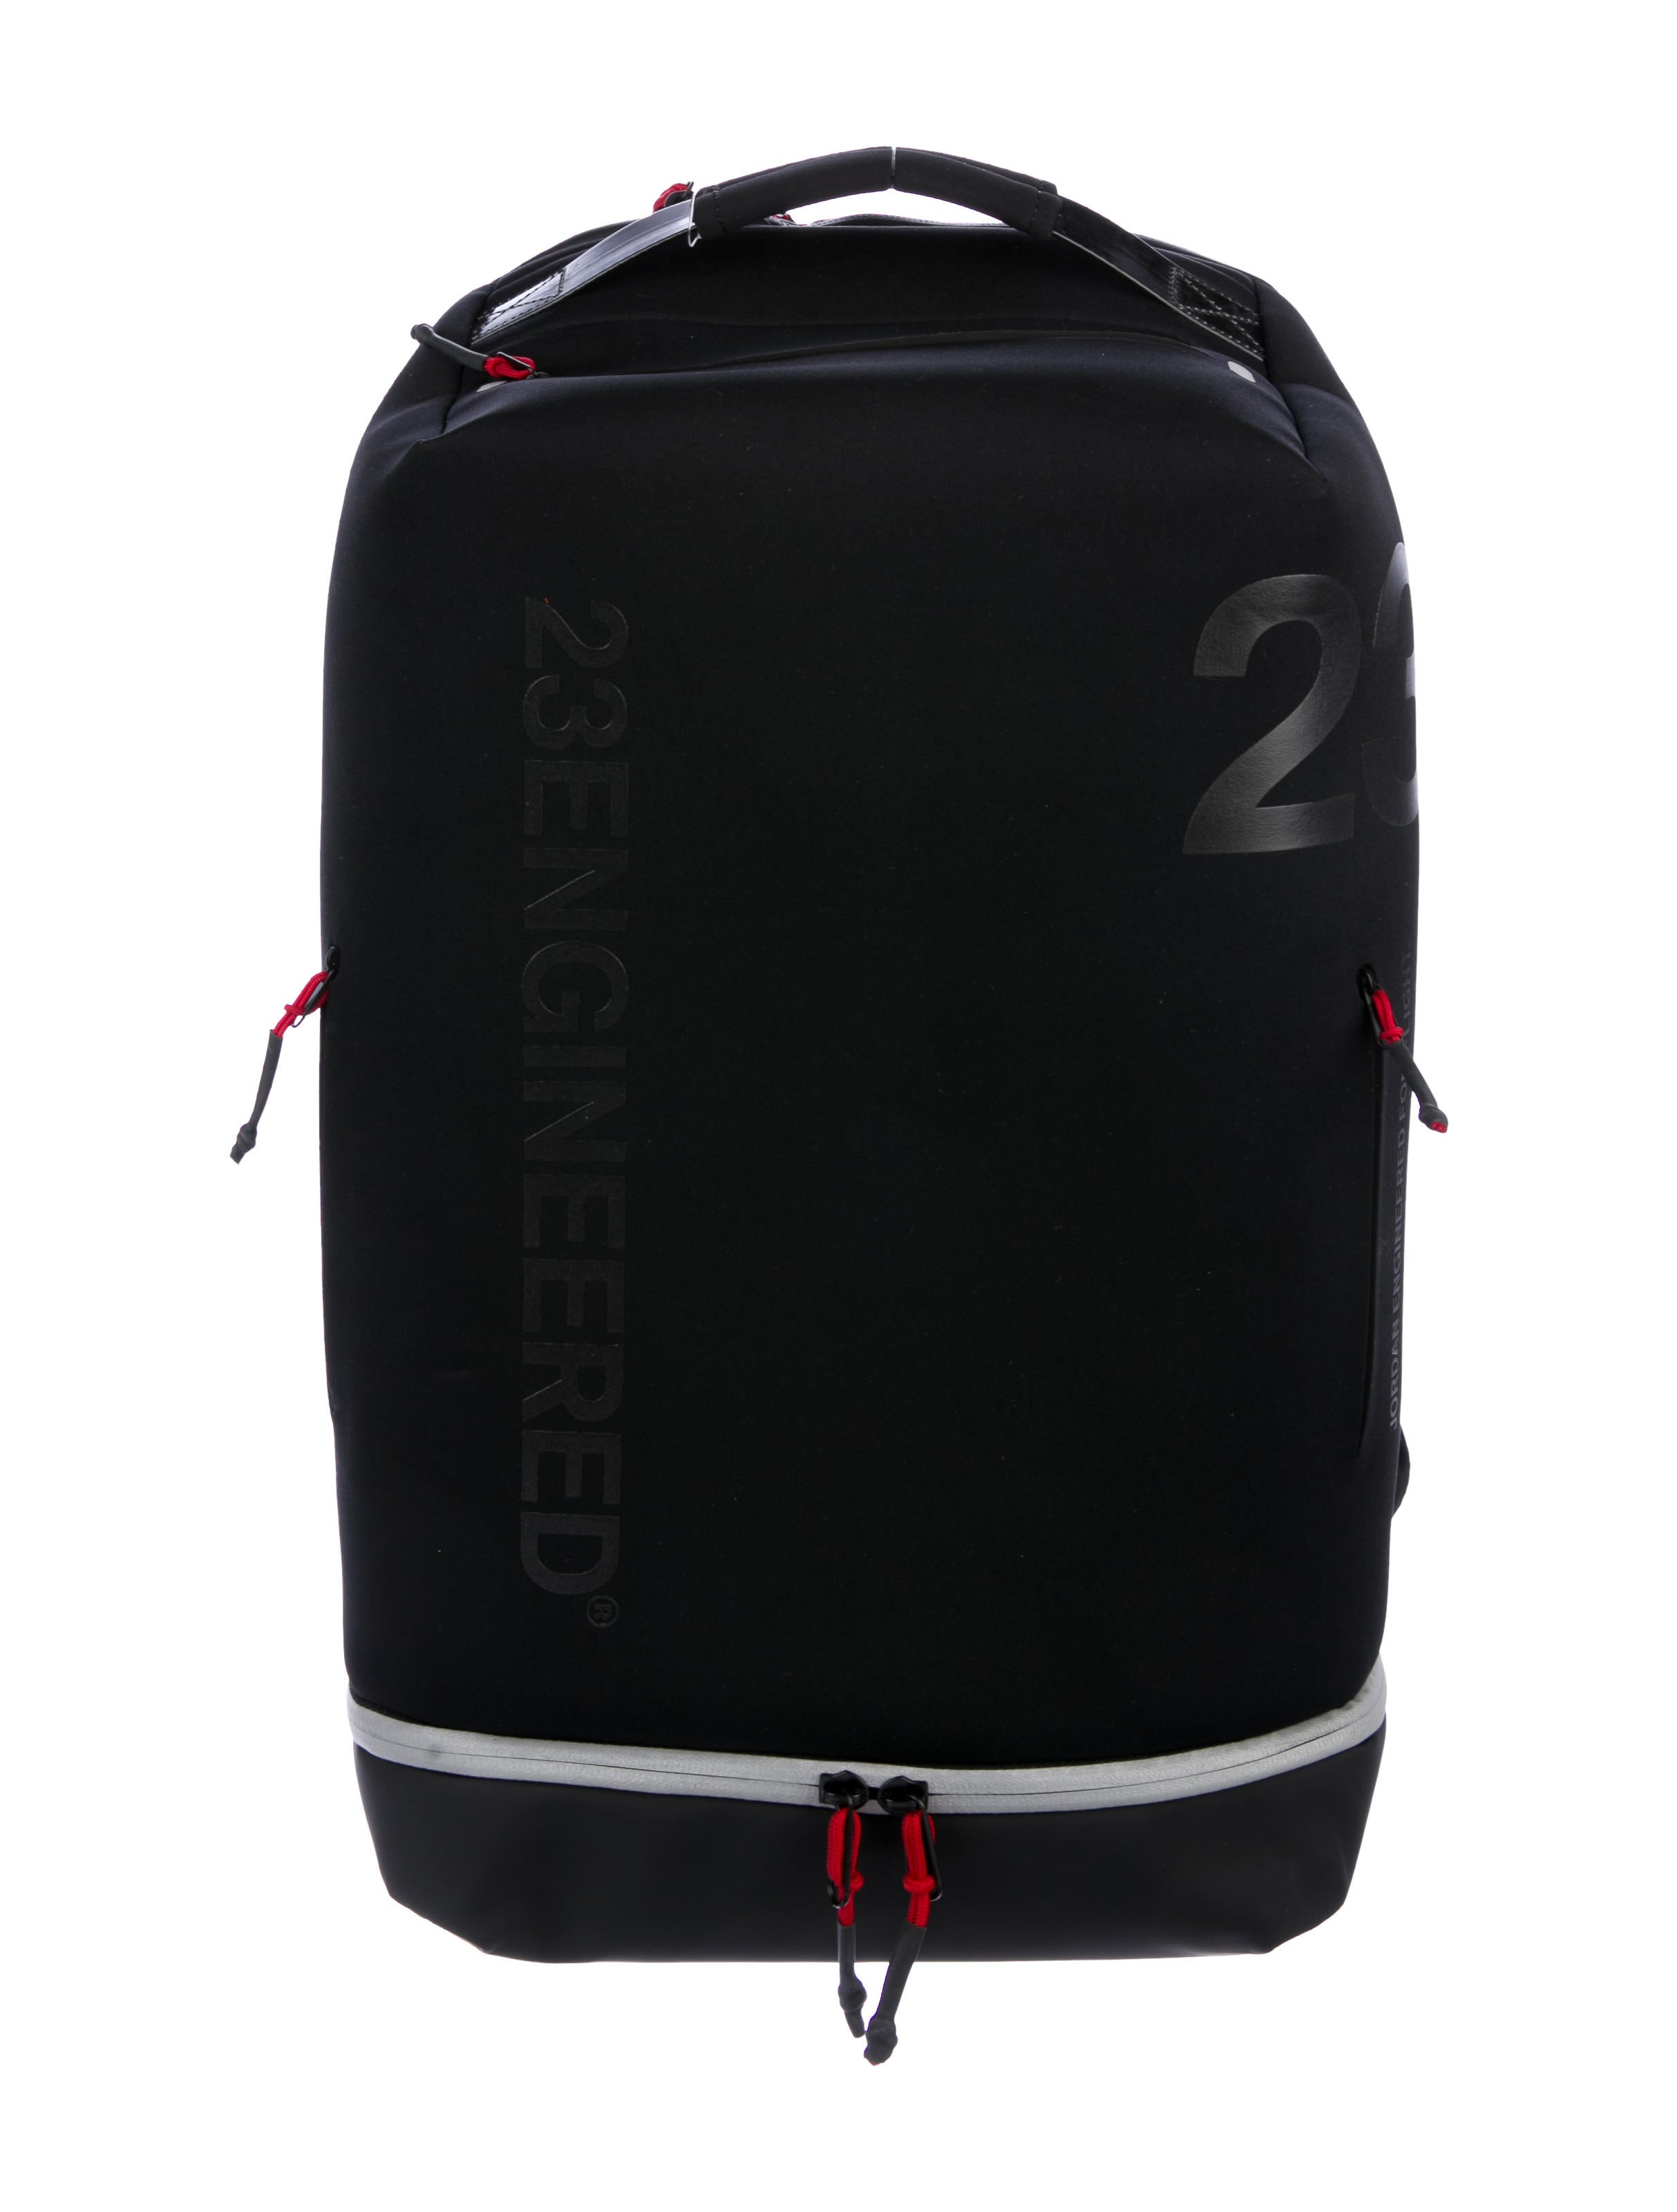 Nike Air Jordan 23 Engineered Backpack w  Tags - Bags - WNIAJ21367 ... bcfffd83fefd6